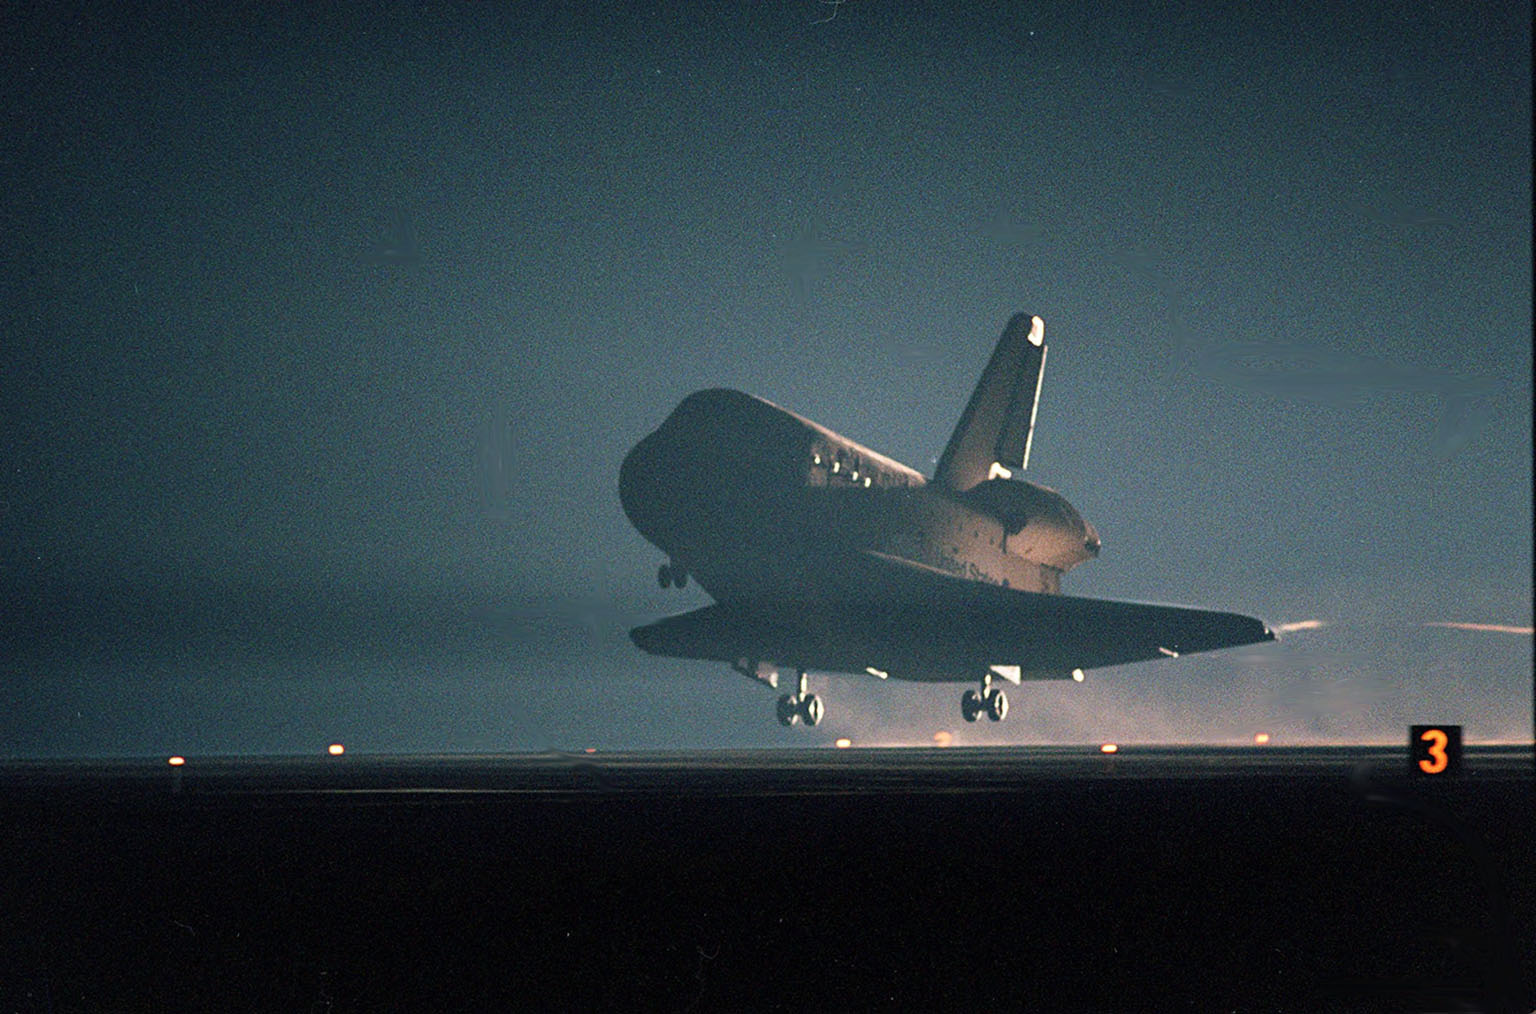 KENNEDY SPACE CENTER, Fla. -- Seen in the landing lights, an illuminated Space Shuttle Atlantis approaches touchdown on KSC?s Shuttle Landing Facility Runway 15 to complete the 9-day, 20-hour, 9-minute-long STS-101 mission. At the controls are Commander James D. Halsell Jr. and Pilot Scott ?Doc? Horowitz. Also onboard the orbiter are Mission Specialists Mary Ellen Weber, James S. Voss, Jeffrey N. Williams, Susan J. Helms and Yury Usachev of Russia. The crew is returning from the third flight to the International Space Station. This was the 98th flight in the Space Shuttle program and the 21st for Atlantis, also marking the 51st landing at KSC, the 22nd consecutive landing at KSC, the 14th nighttime landing in Shuttle history and the 29th in the last 30 Shuttle flights. Main gear touchdown was at 2:20:17 a.m. EDT May 29 , landing on orbit 155 of the mission. Nose gear touchdown was at 2:20:30 a.m. EDT, and wheel stop at 2:21:19 a.m. EDT